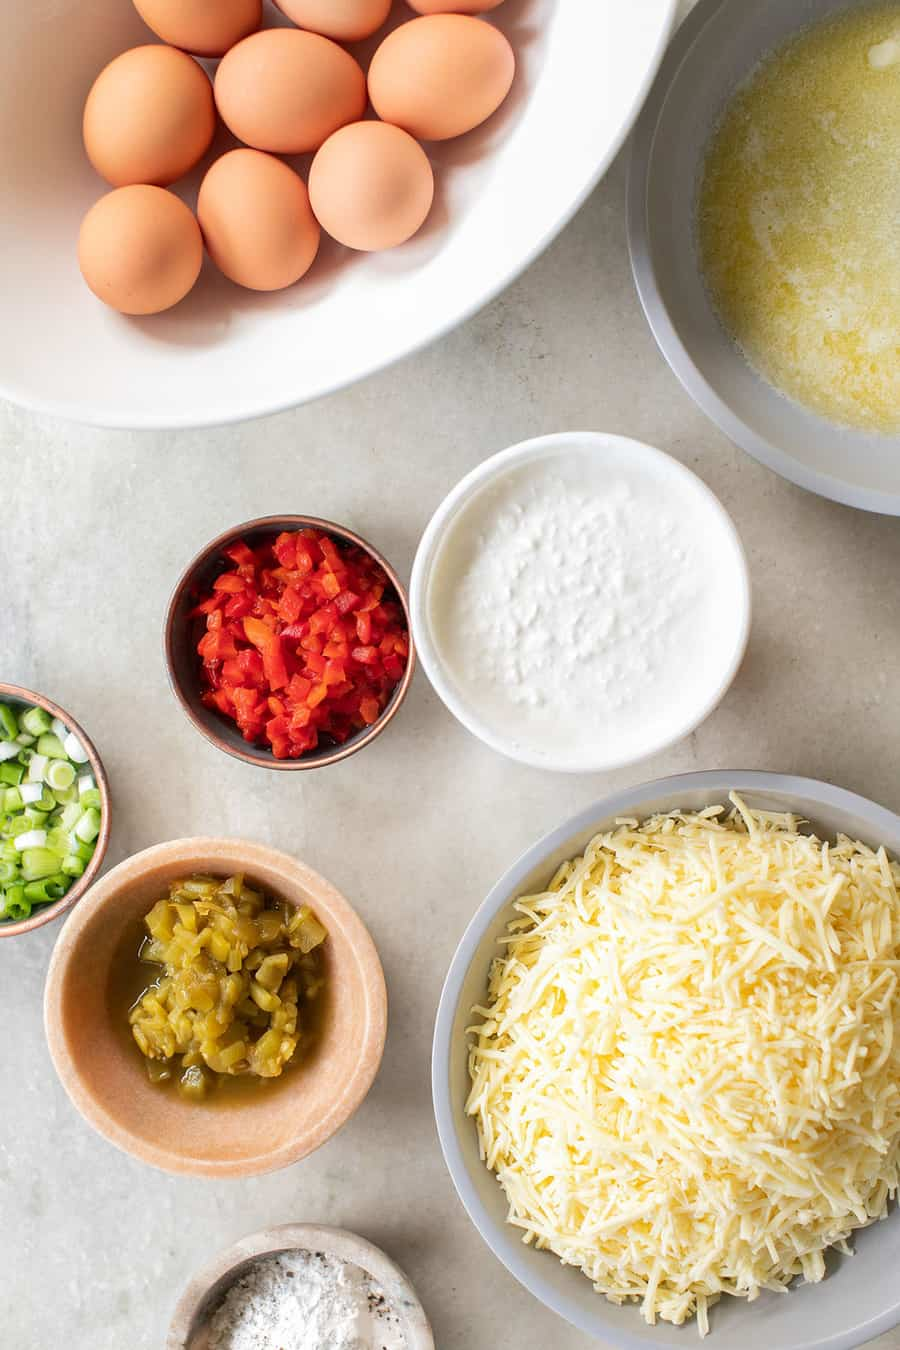 Eggs, cottage cheese, butter, green chilis, pimentos, onions and cheese to make a frittata